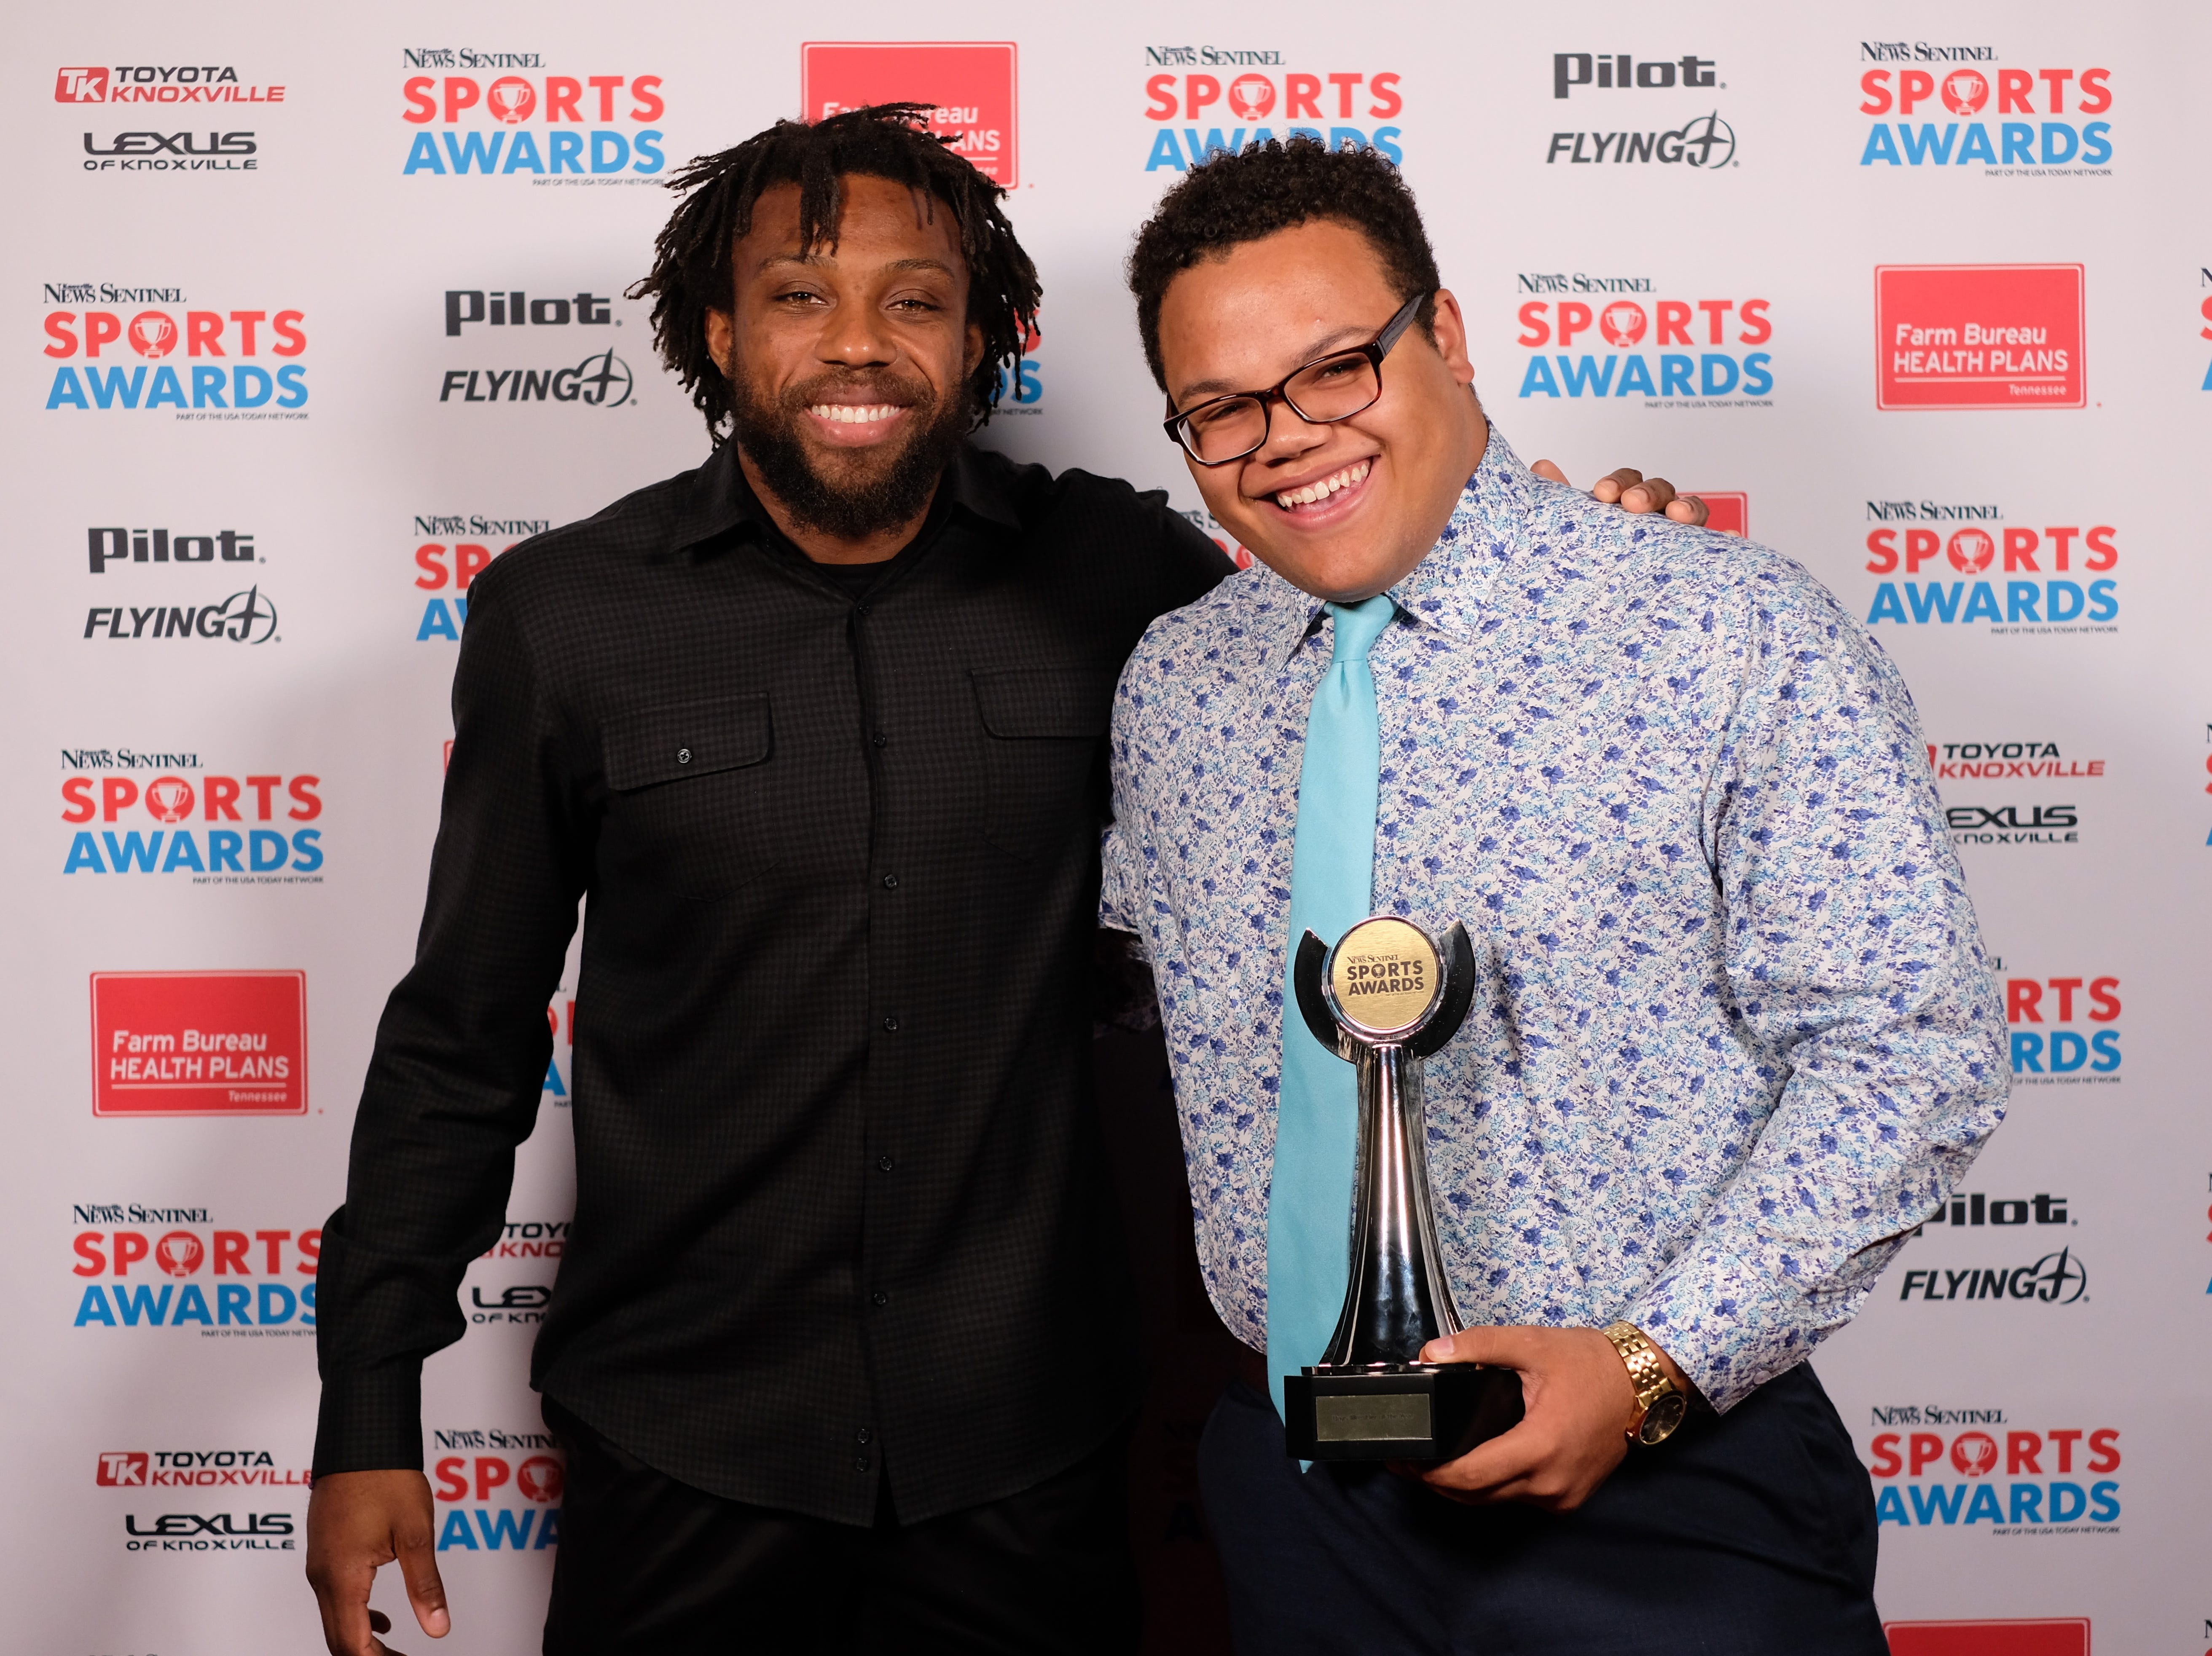 NFL football player Eric Berry is pictured with Sammy Evans of of Alcoa High School during the Knoxville News Sentinel Sports Awards at the Tennessee Theatre on Wednesday, June 7, 2017. Evans won the Wrestling Award and was Boys Athlete of the Year finalist.